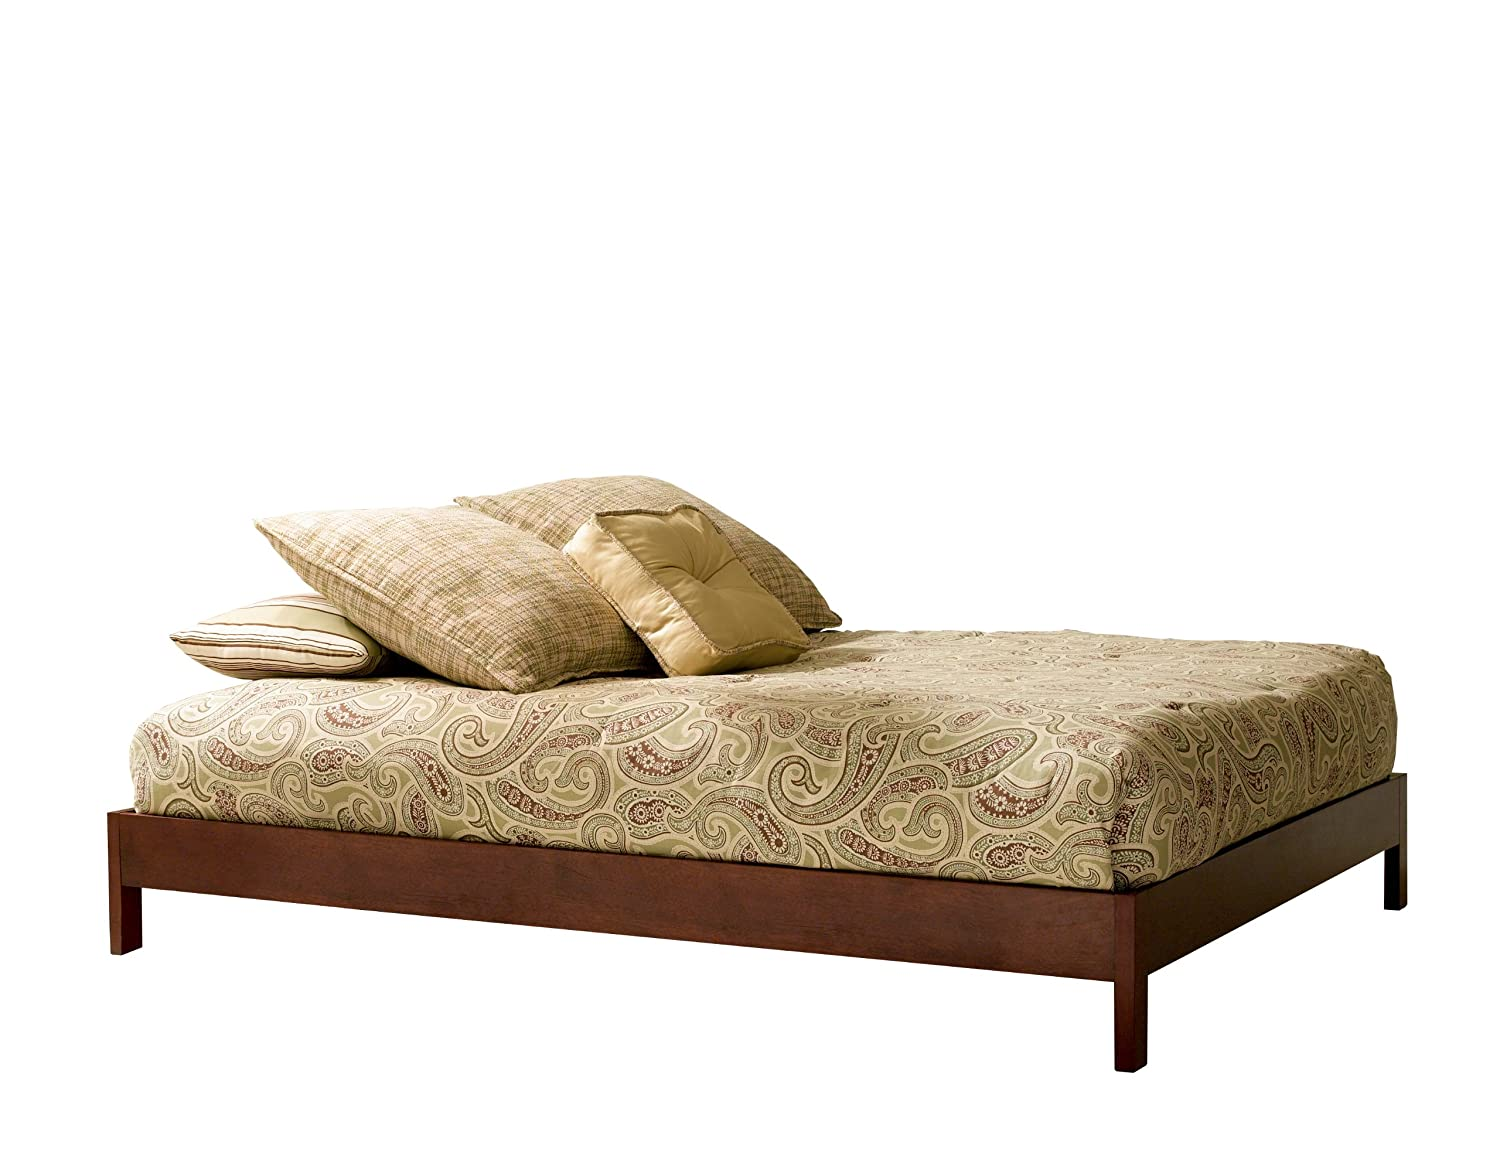 amazoncom murray platform bed with wooden box frame mahogany finish queen kitchen dining